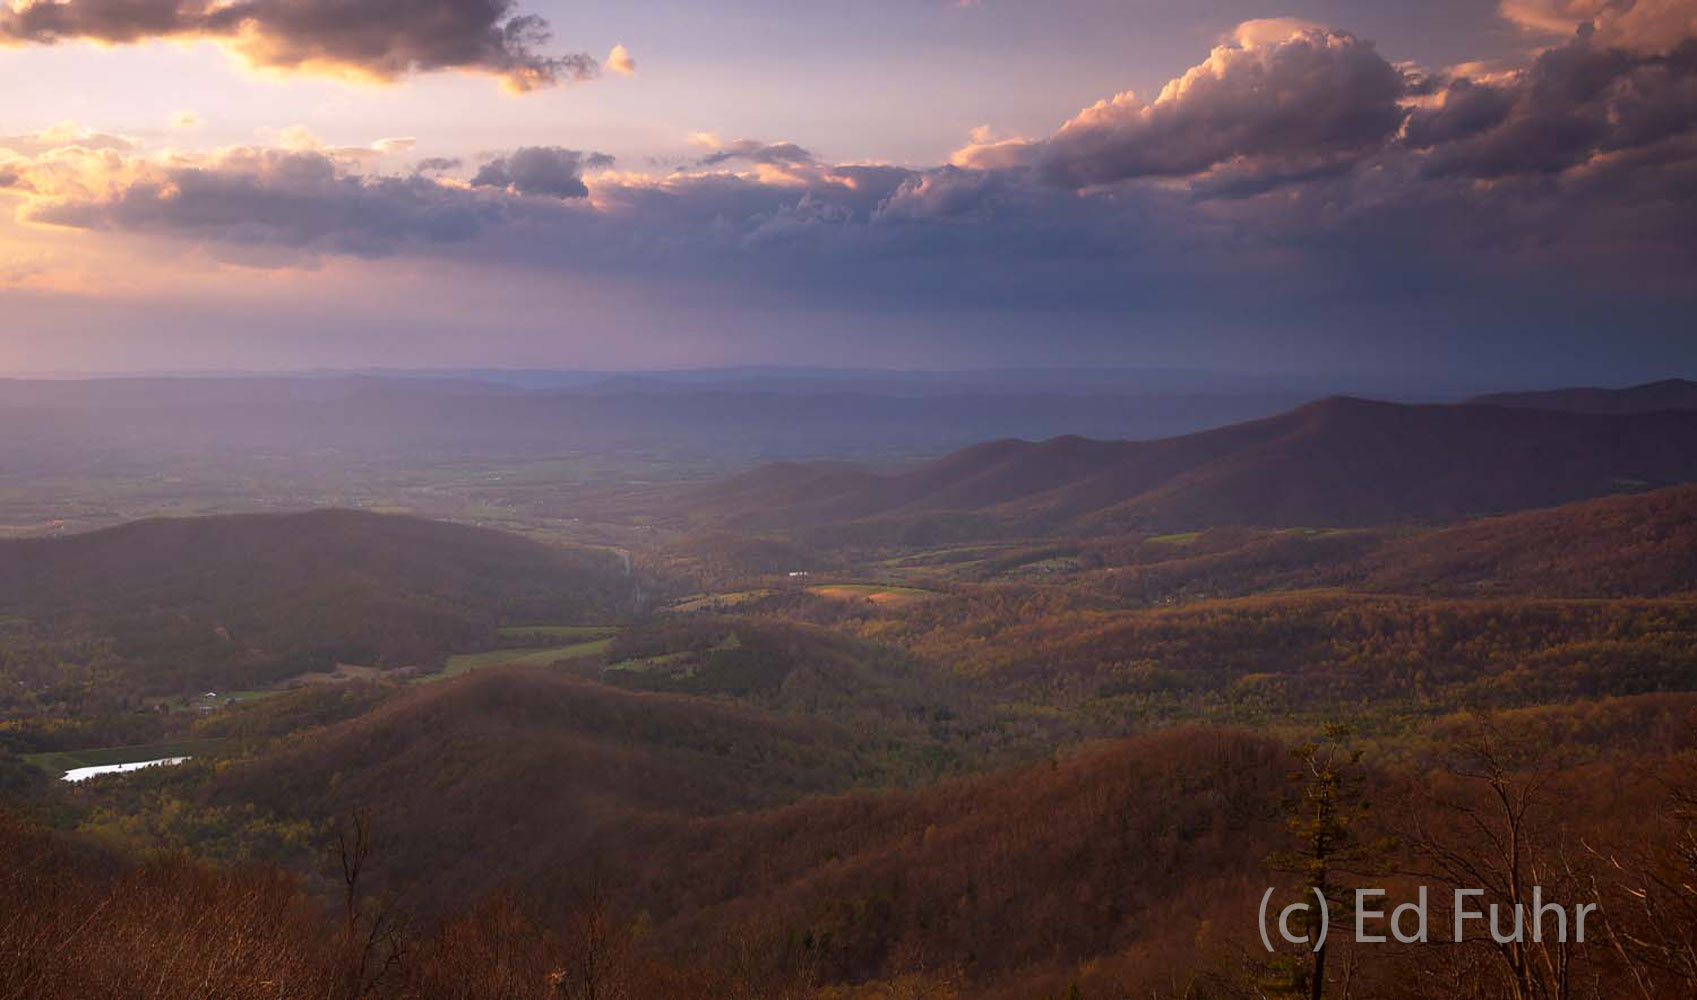 Shenandoah, Shenandoah National Park, photo, photography, images, mountains, wilderness, Virginia, photo